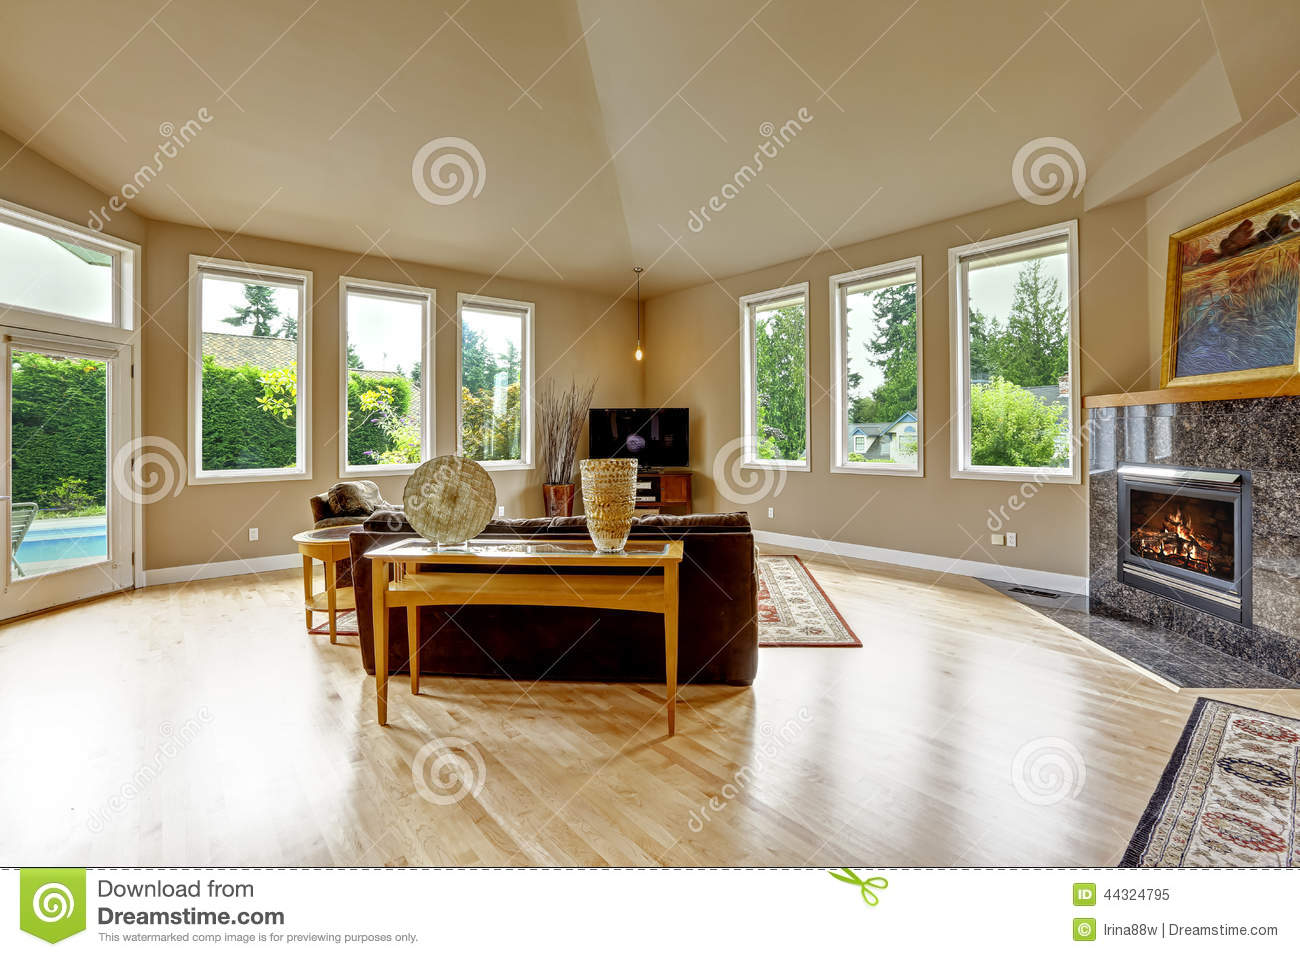 Cool Beau Salon Brun Et Beige Avec Le Plafond Vot Photo Stock Image With Salon Brun Et Beige